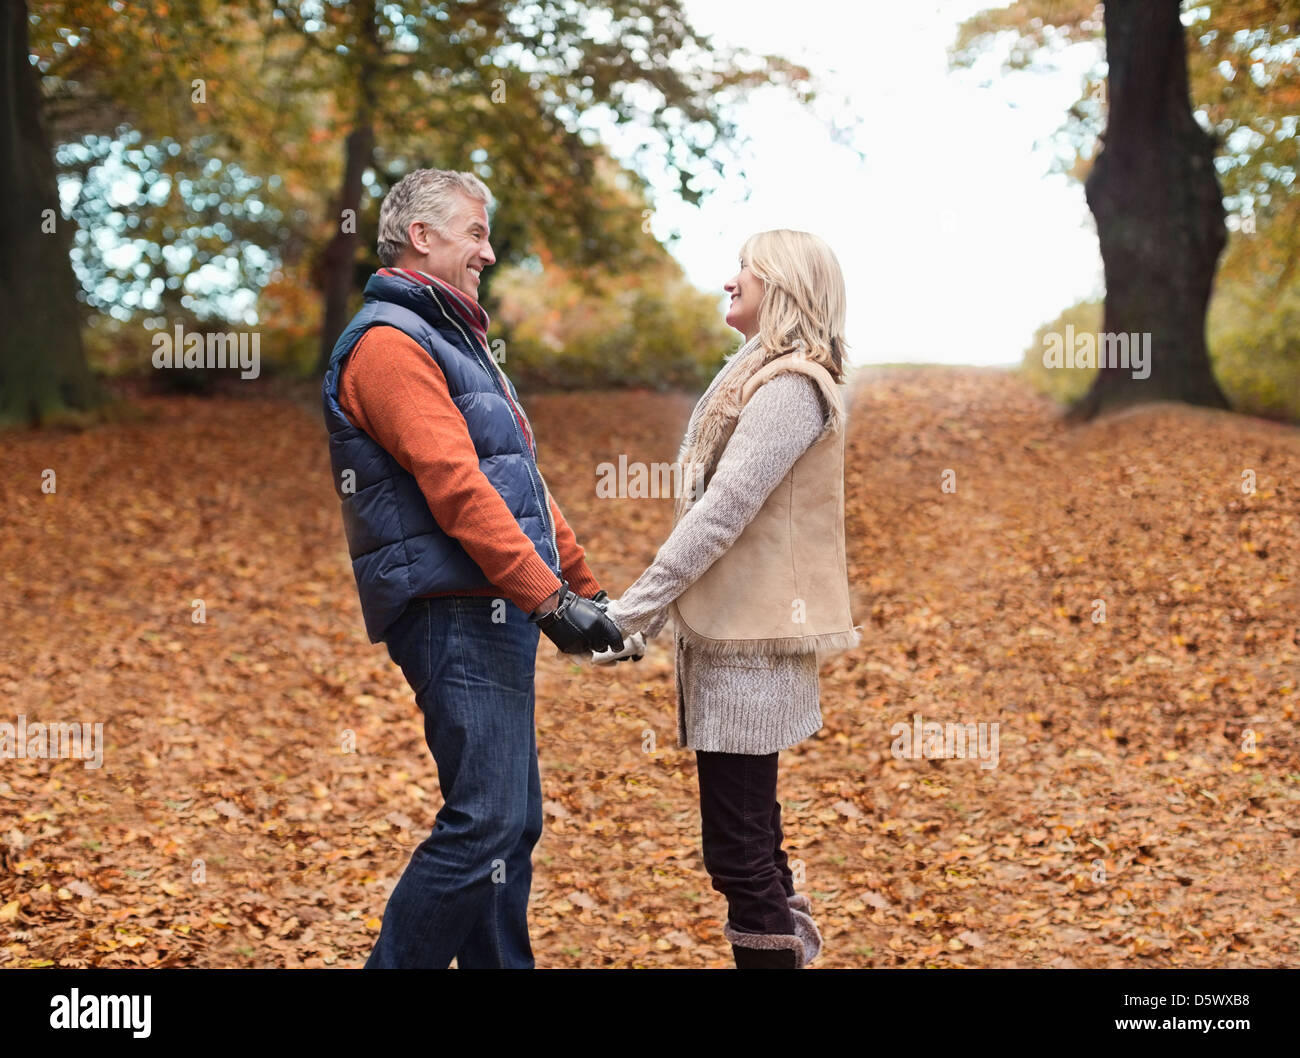 Older couple holding hands in park - Stock Image